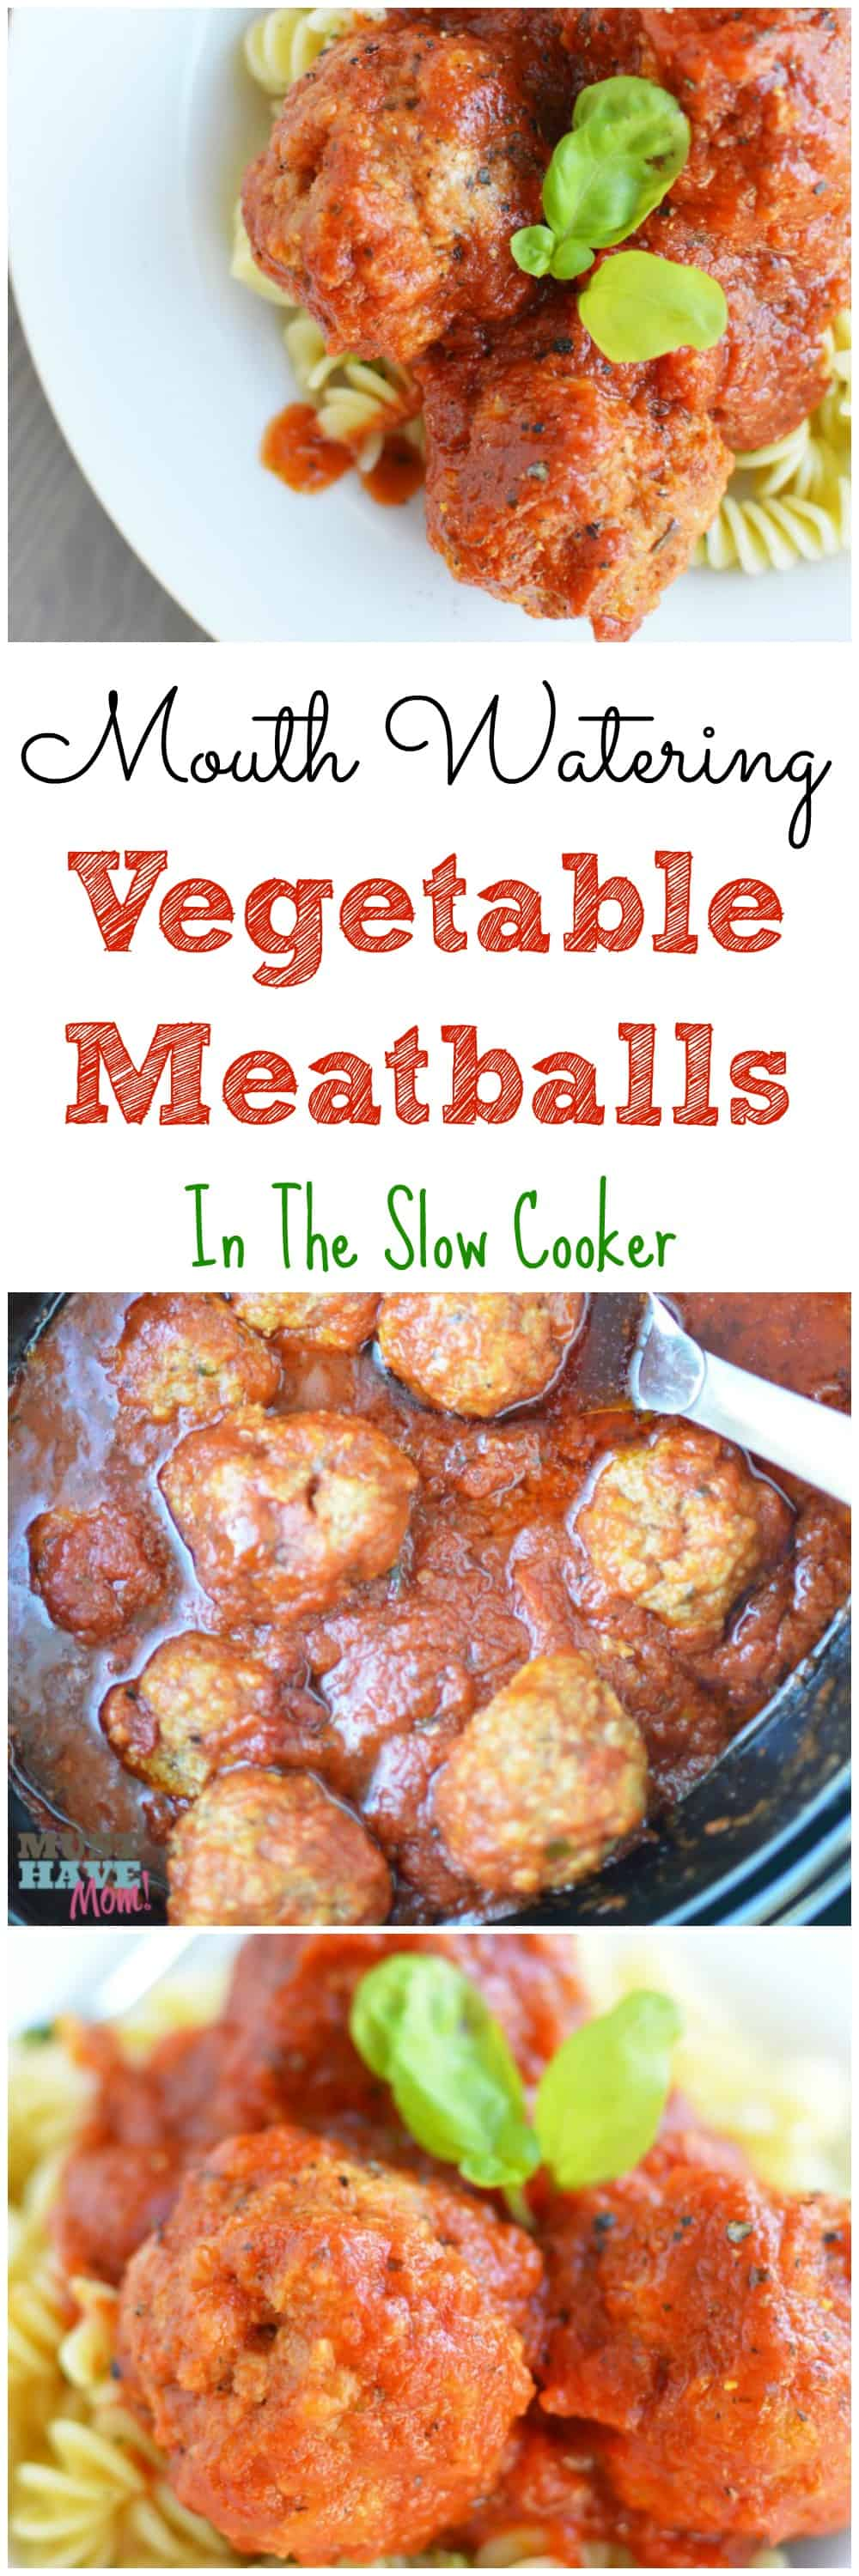 Mouth watering veggie meatballs in a slow cooker! This crock pot vegetable meatballs recipe is to die for! Step by step instructions and photos too!